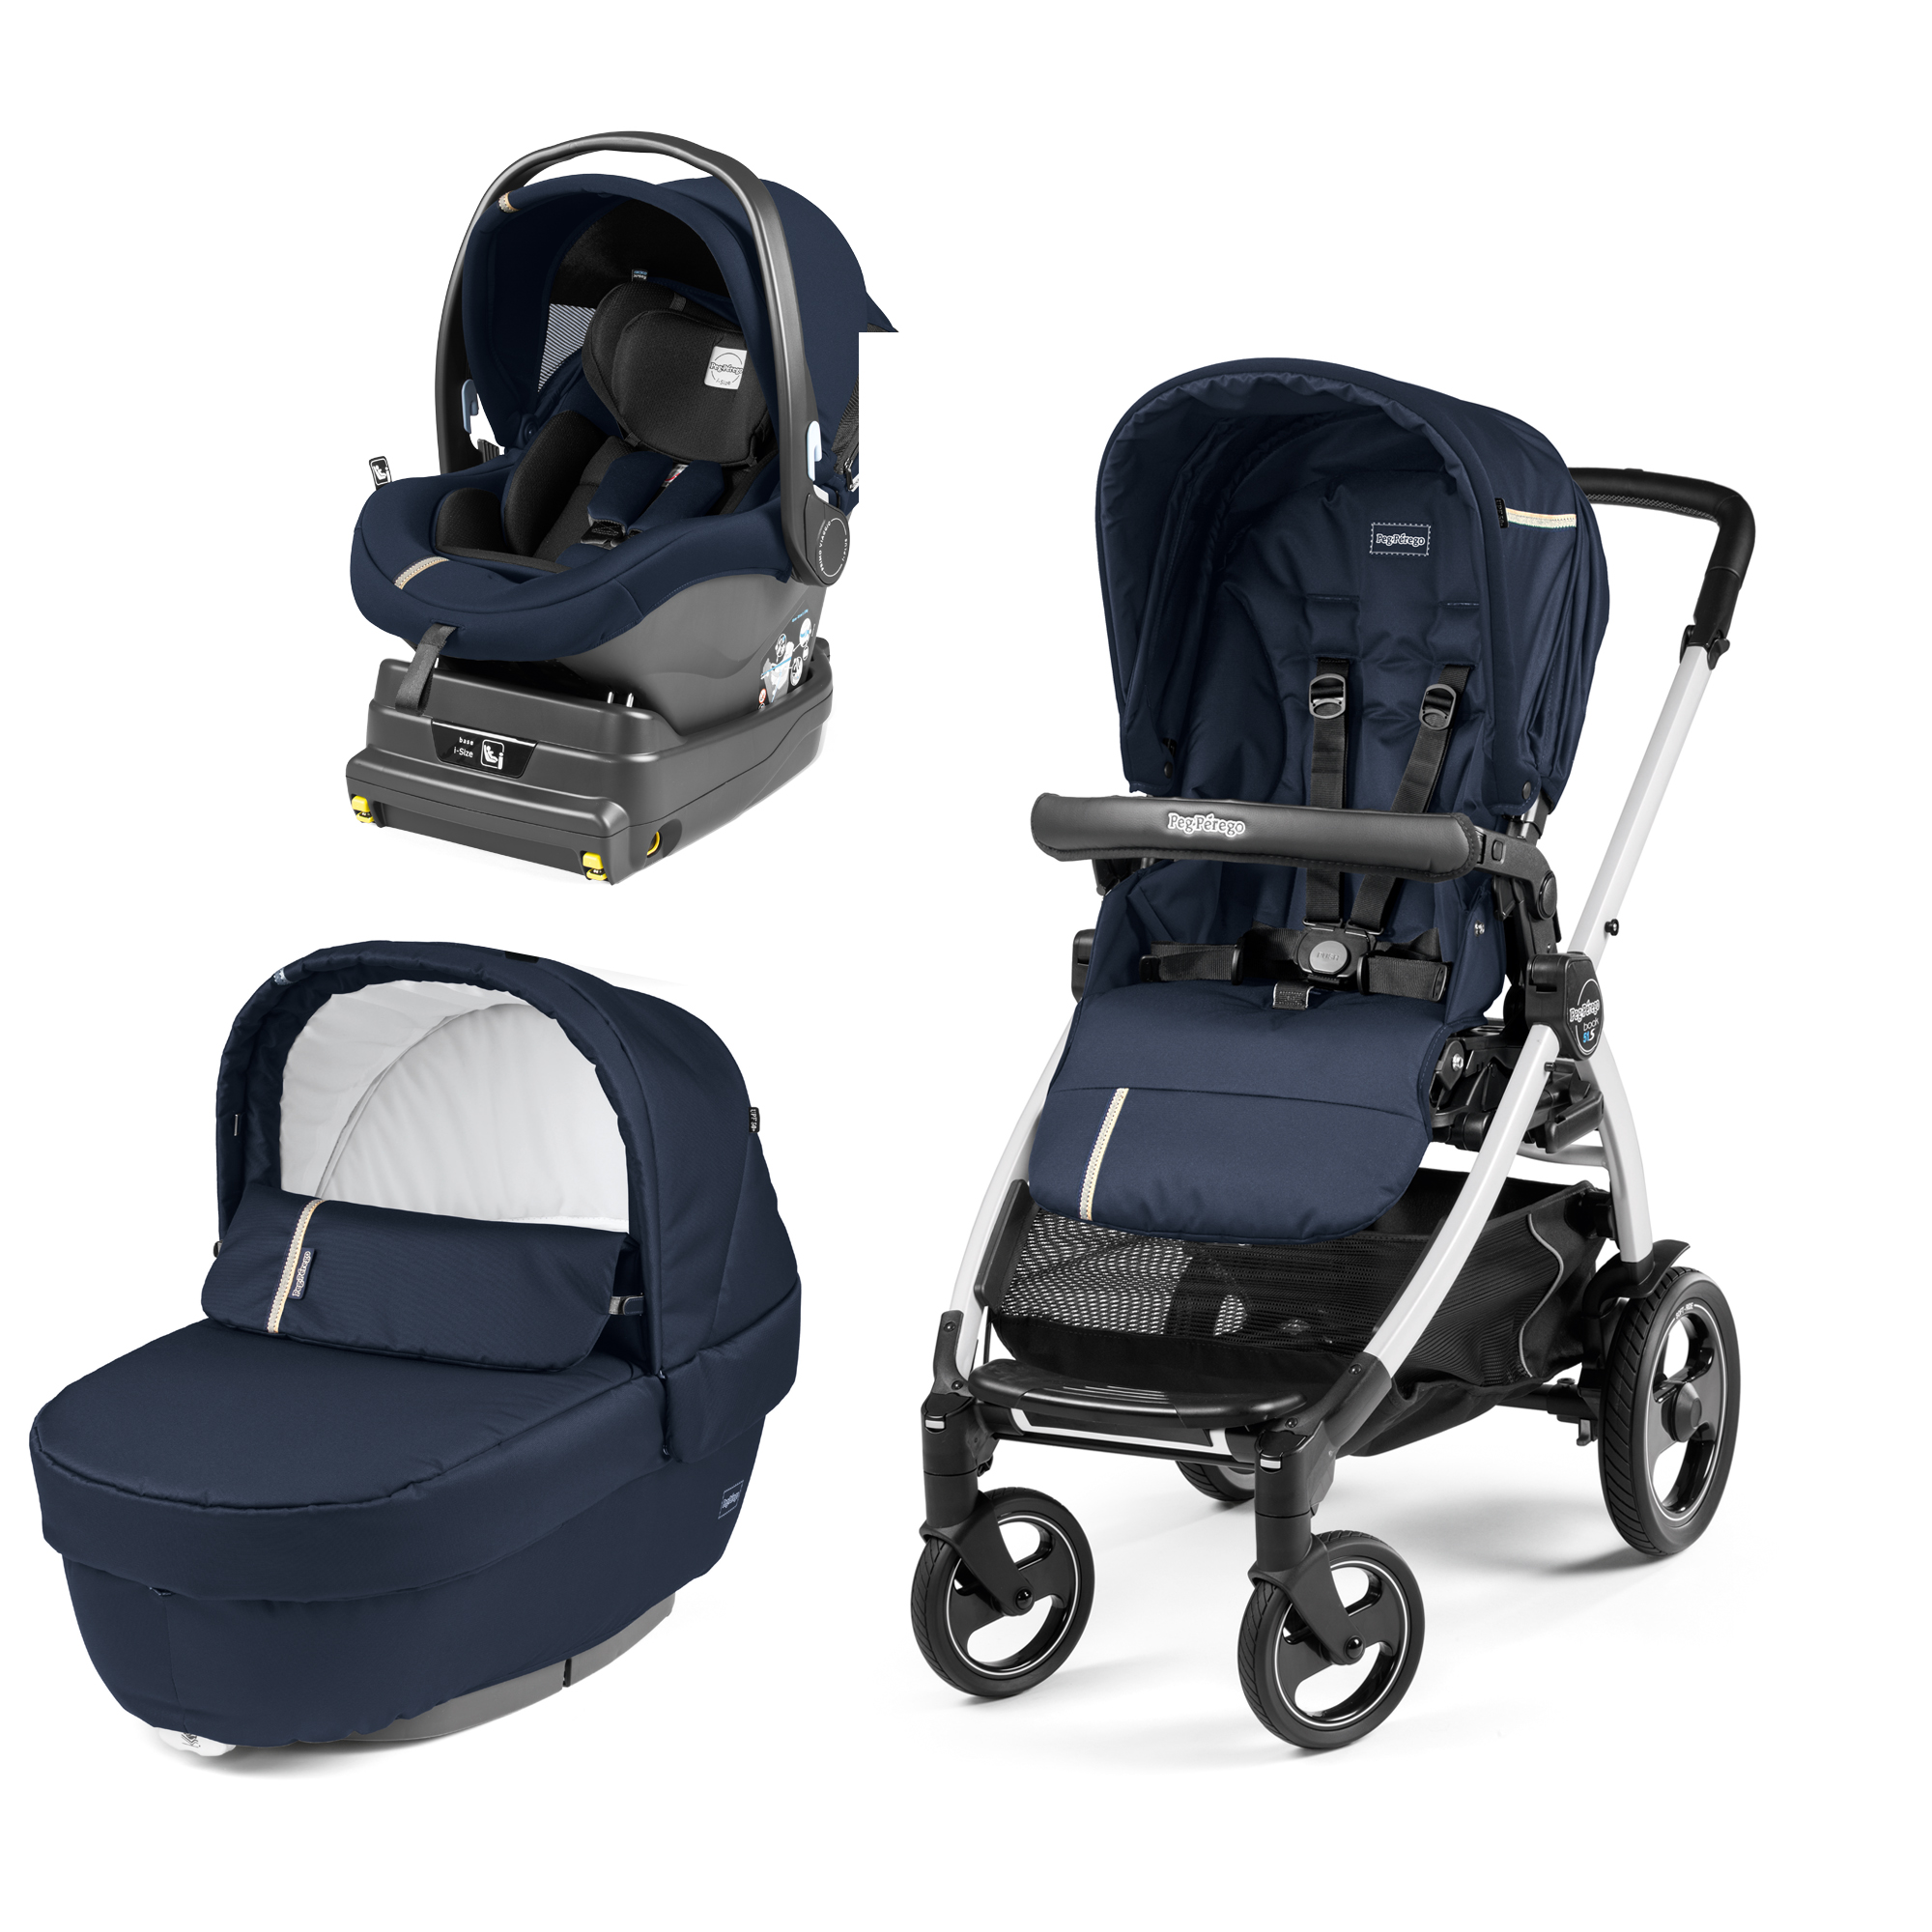 Carucior 3 In 1, Peg Perego, Book Plus 51 S, Titania, baza i-Size inclusa, Class Navy